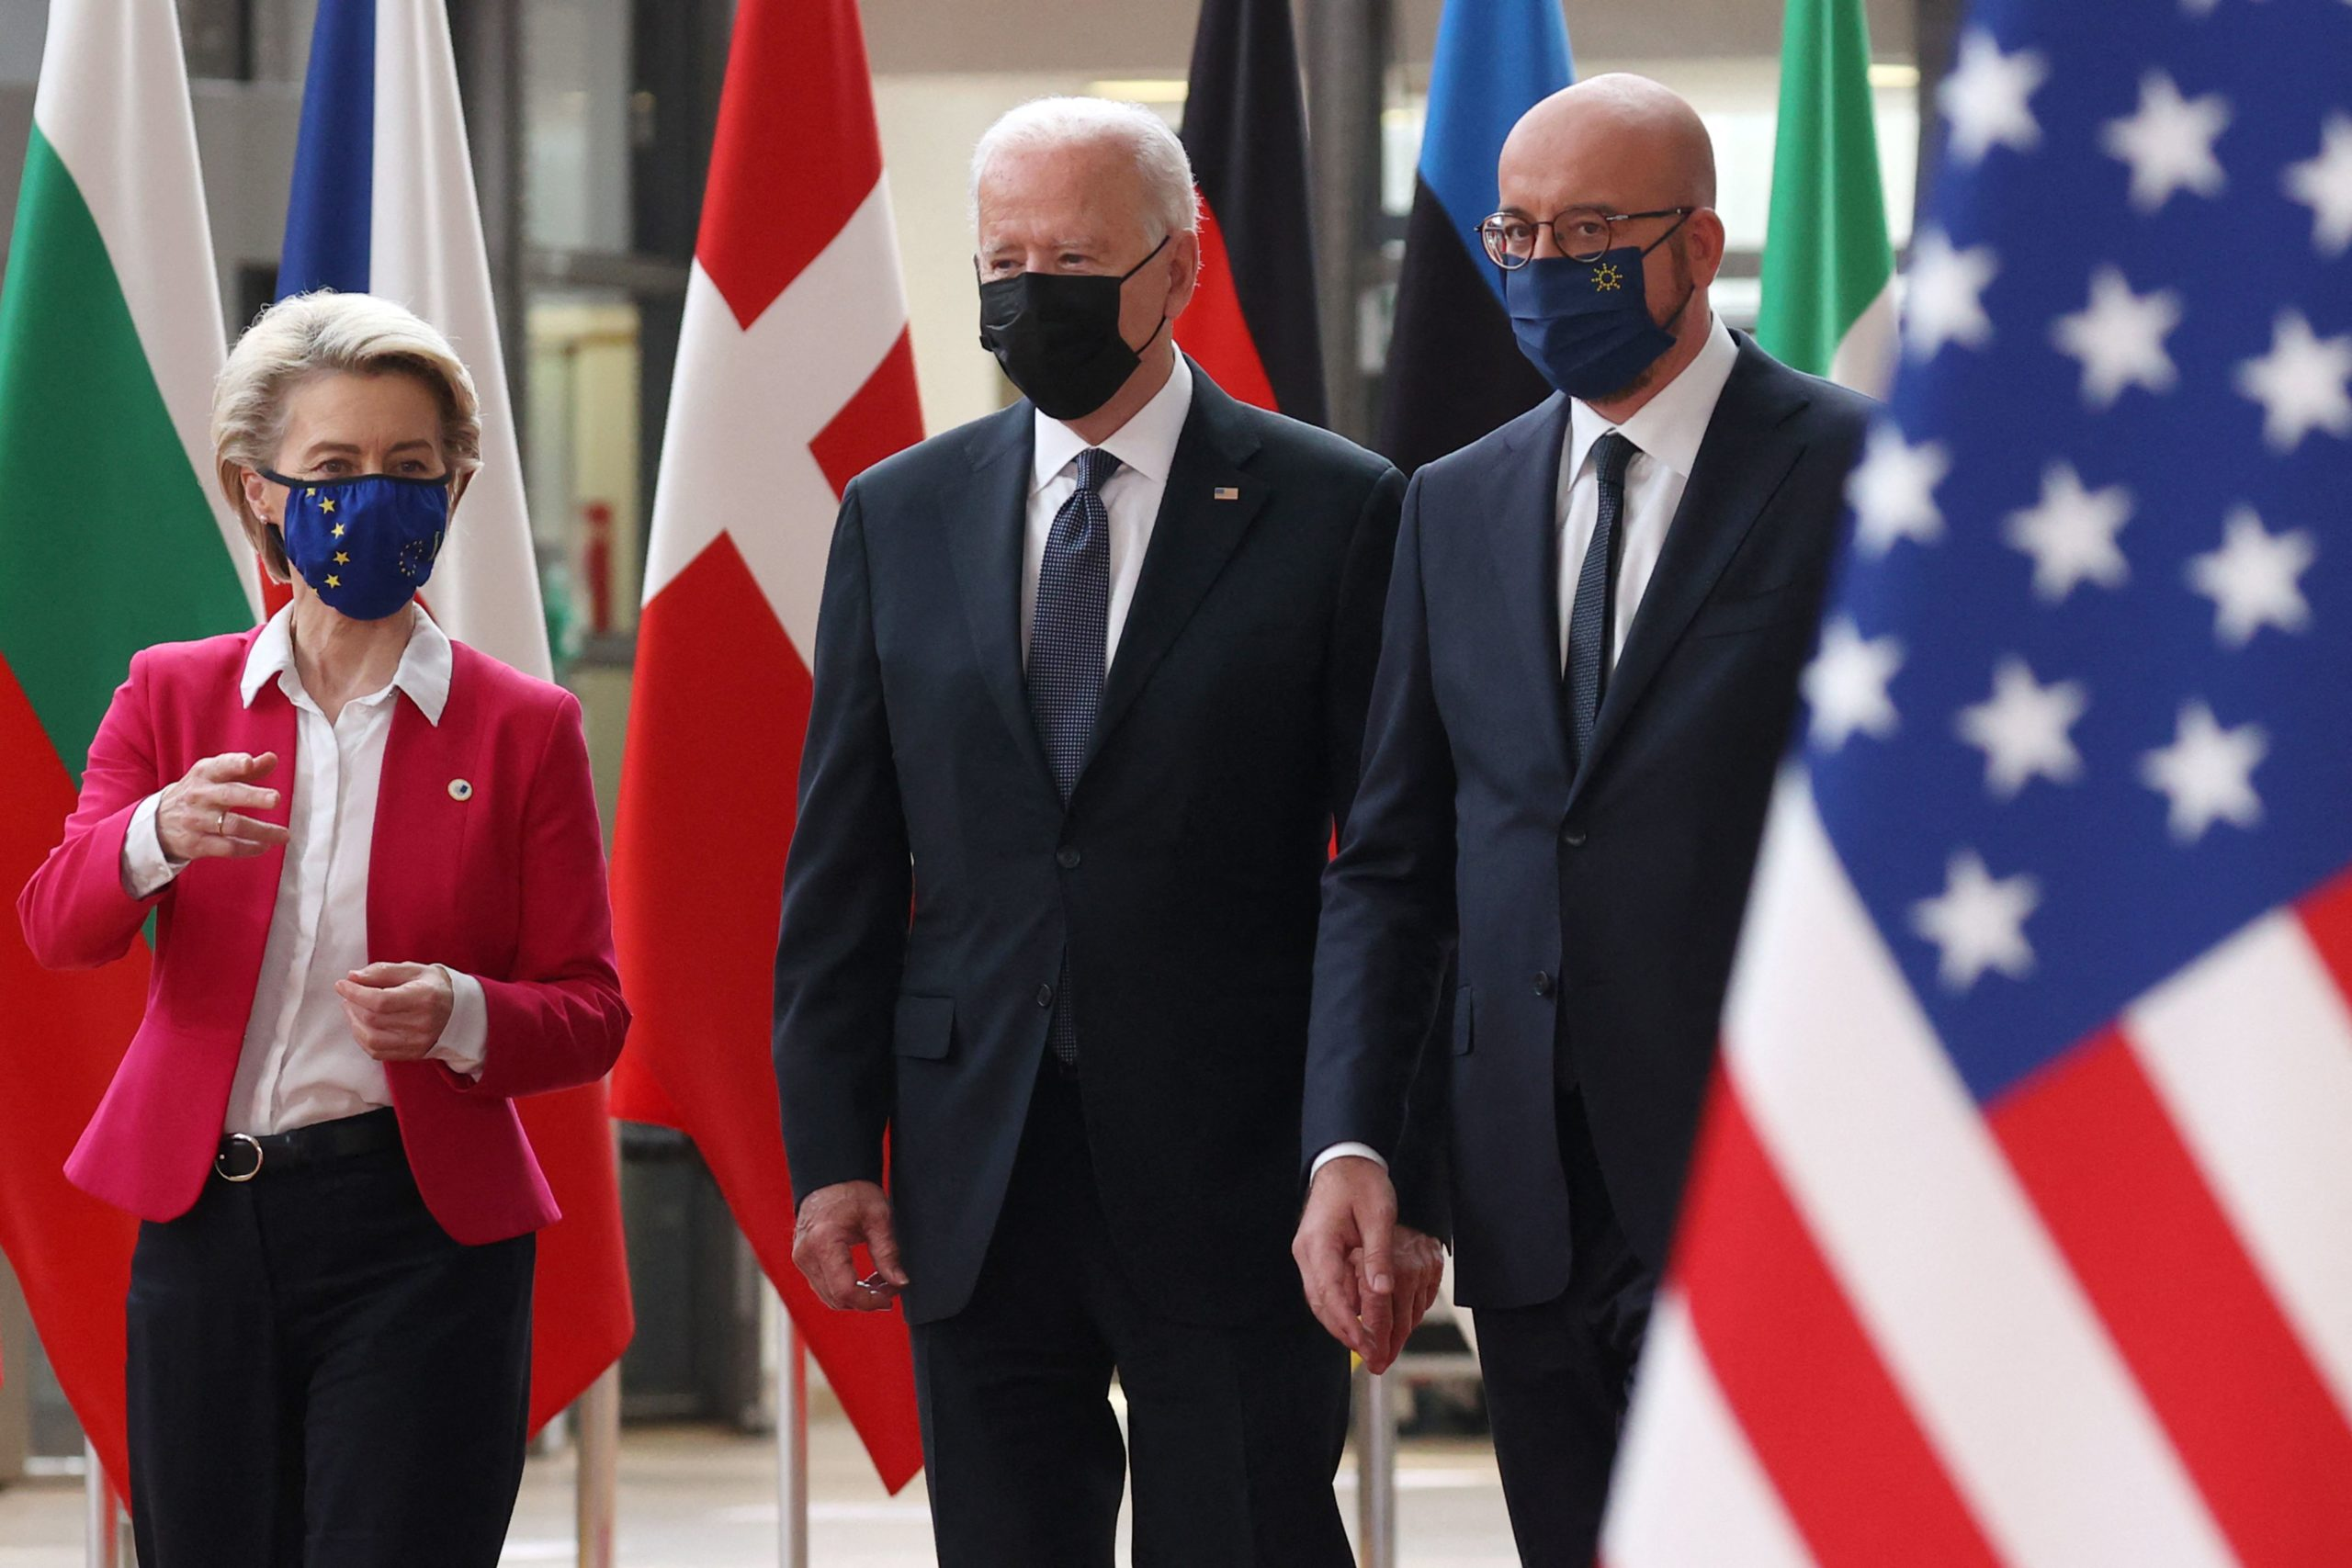 ALTERNATIVE CROP - (From L) President of the EU Commission Ursula von der Leyen, US President Joe Biden and European Council President Charles Michel arrive for an EU - US summit at the European Union headquarters in Brussels on June 15, 2021. (Photo by KENZO TRIBOUILLARD / AFP) (Photo by KENZO TRIBOUILLARD/AFP via Getty Images)